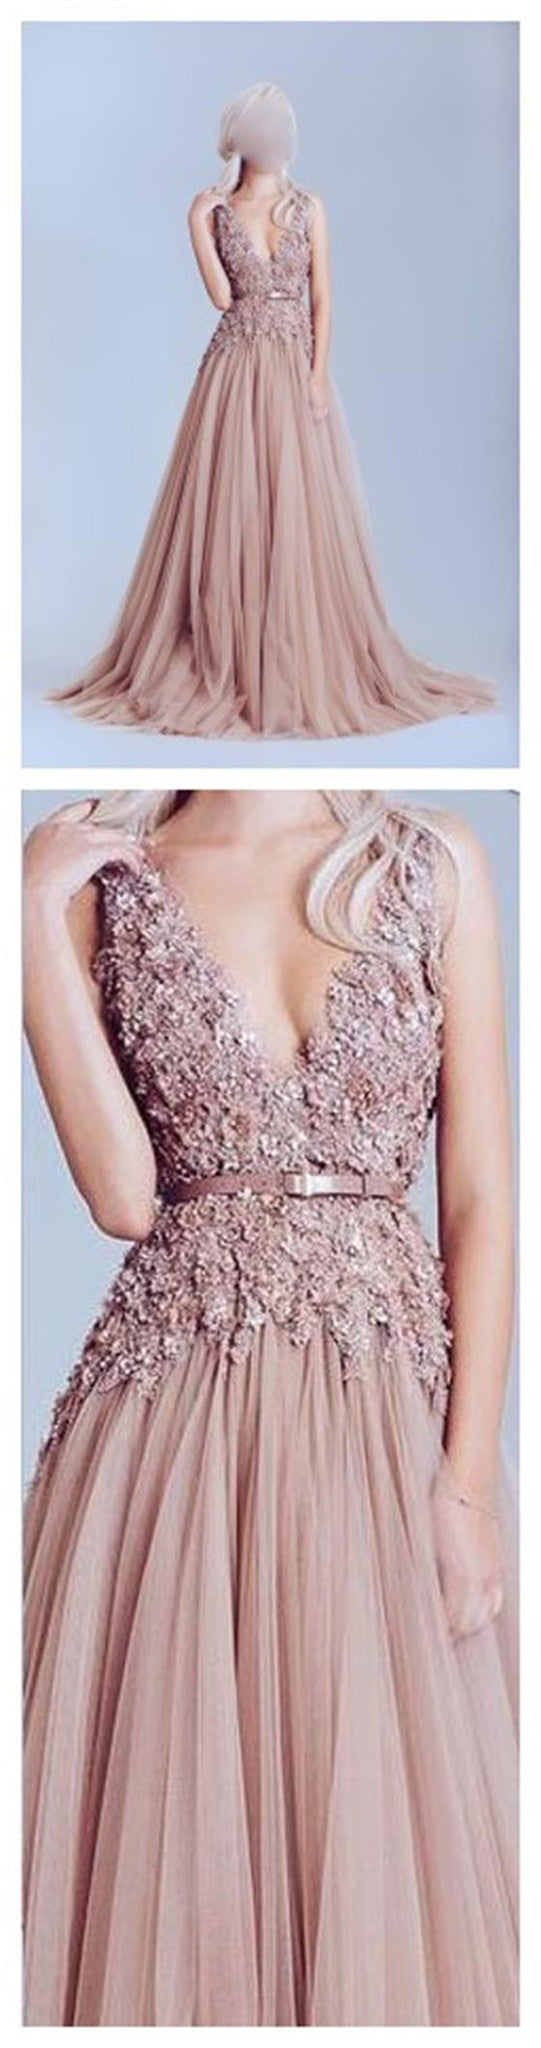 Dusty Pink Tulle Sleeveless Appliques Beading  Best Sale Elegant Long A-line Party Prom Dress. ,PD0066